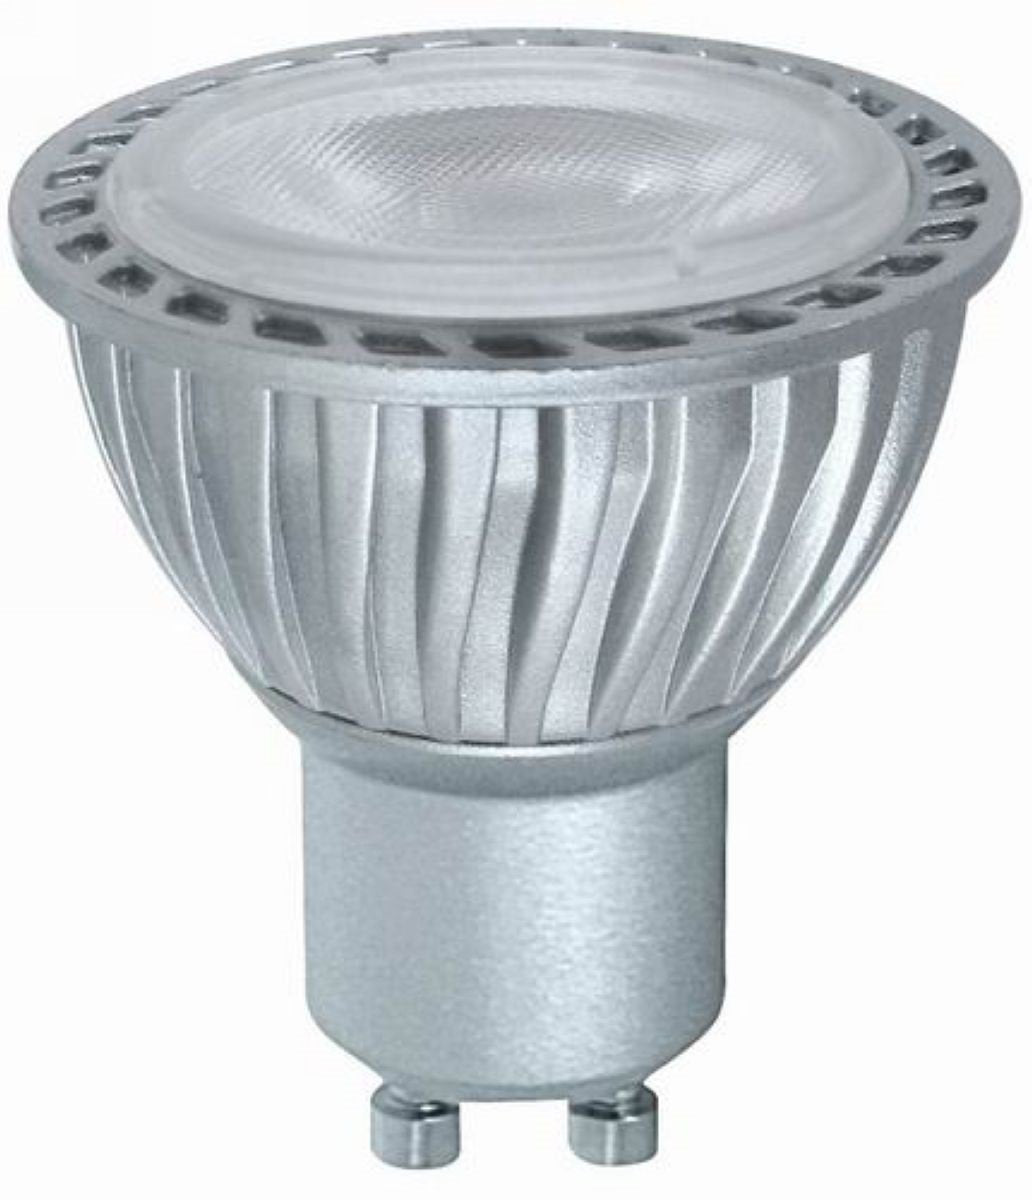 Bravo 7w GU10 Dimmable LED